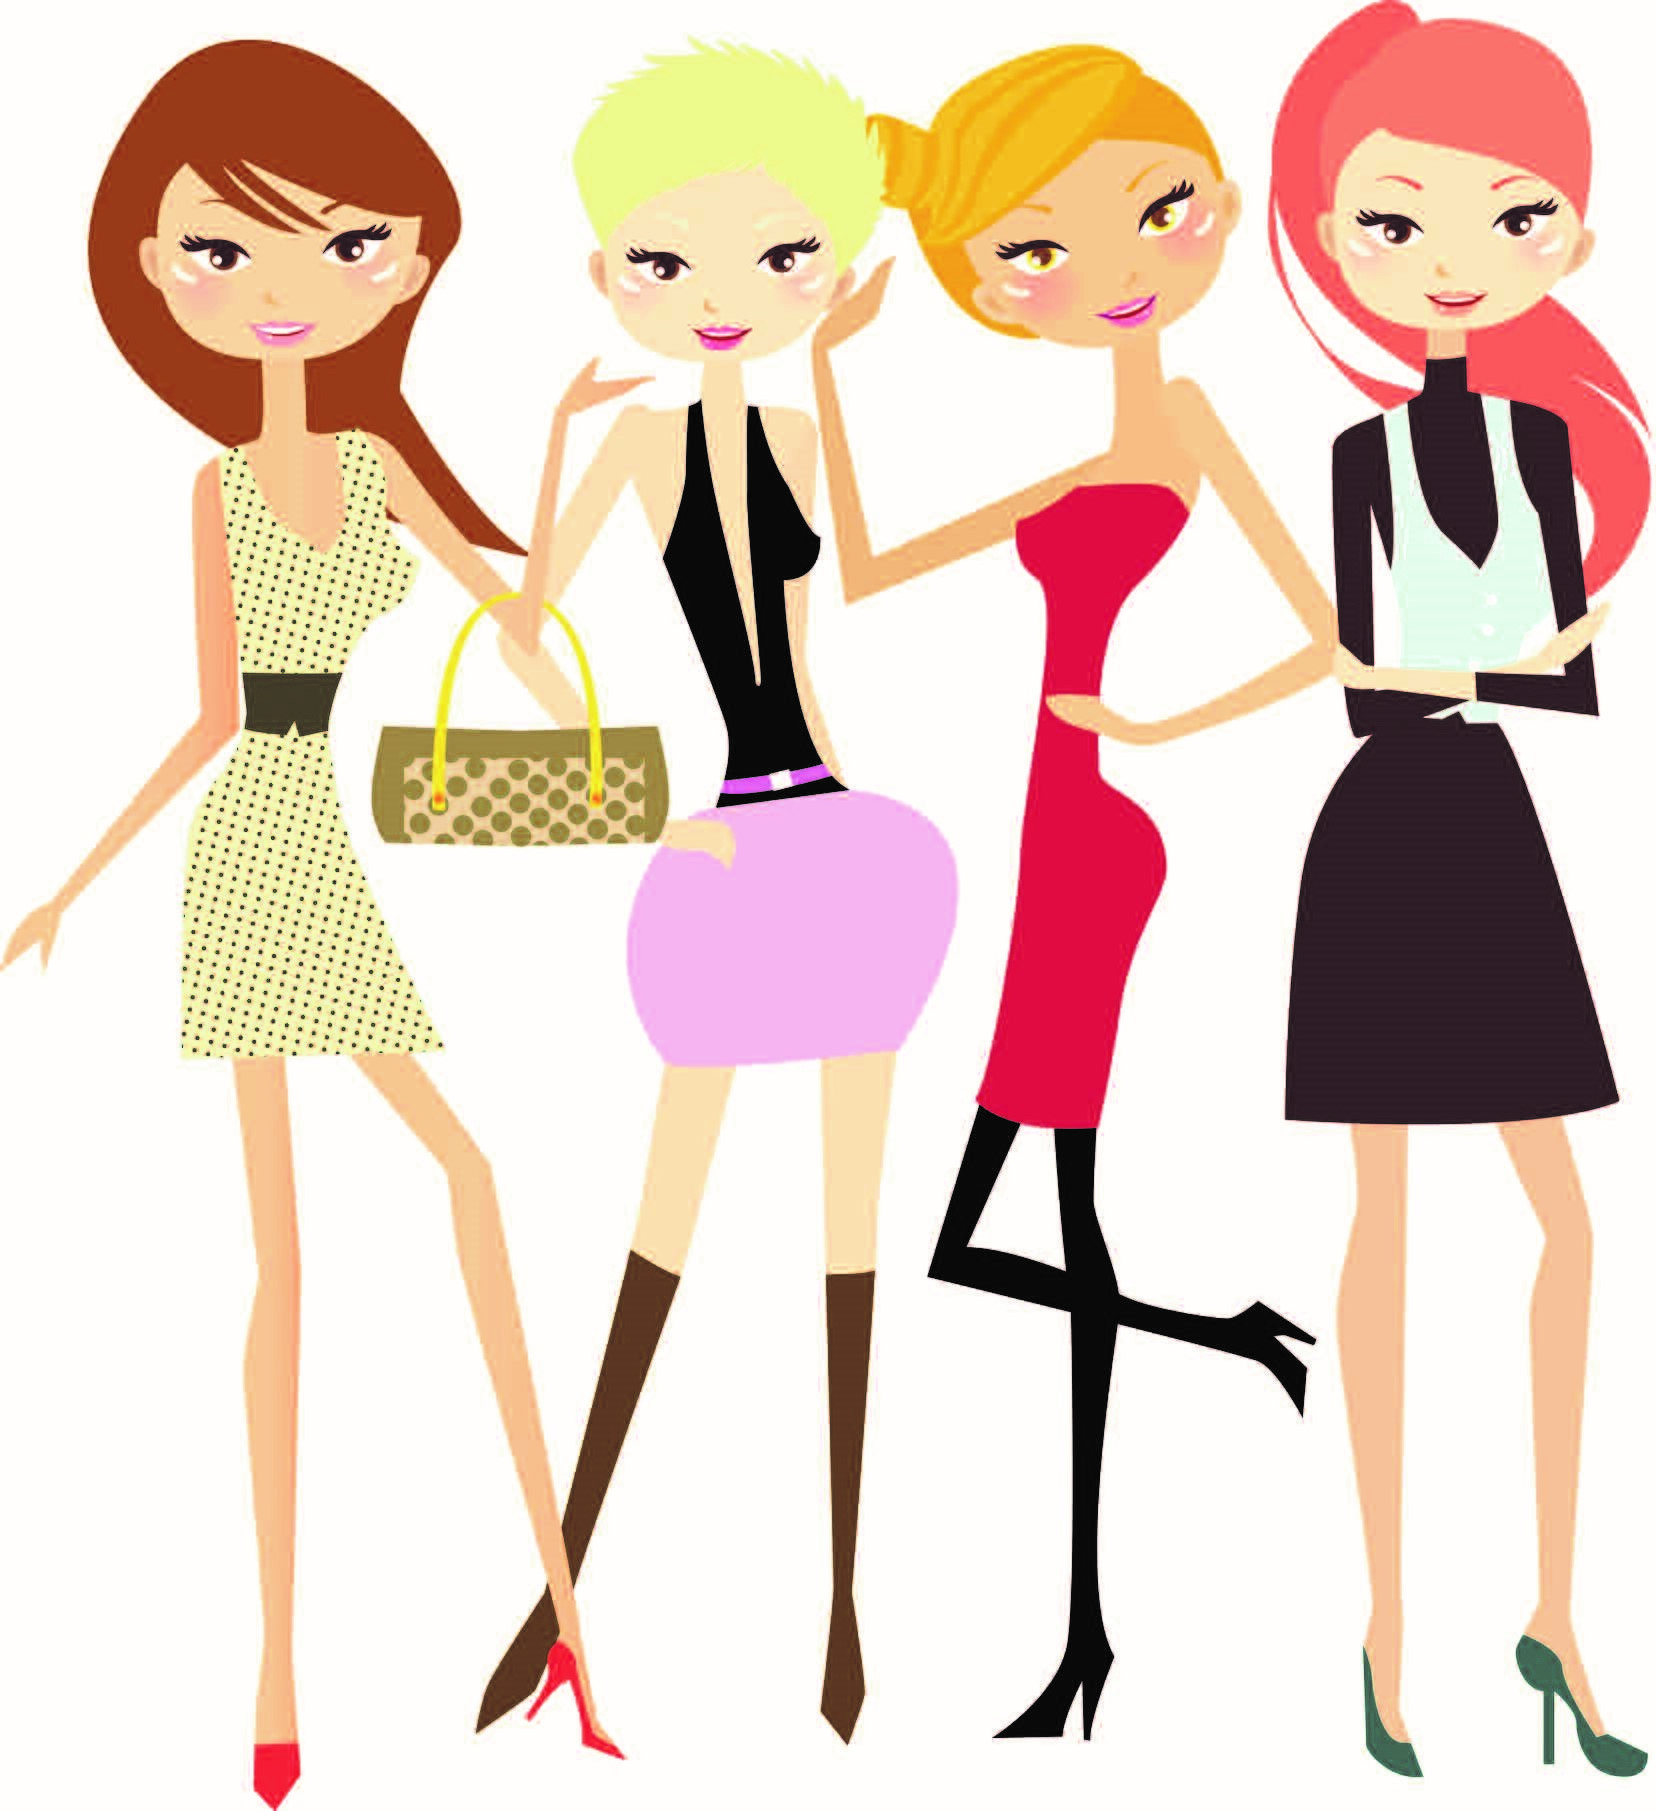 ladies night clip art google search mom s club pinterest rh pinterest com casino night clip art casino night clip art